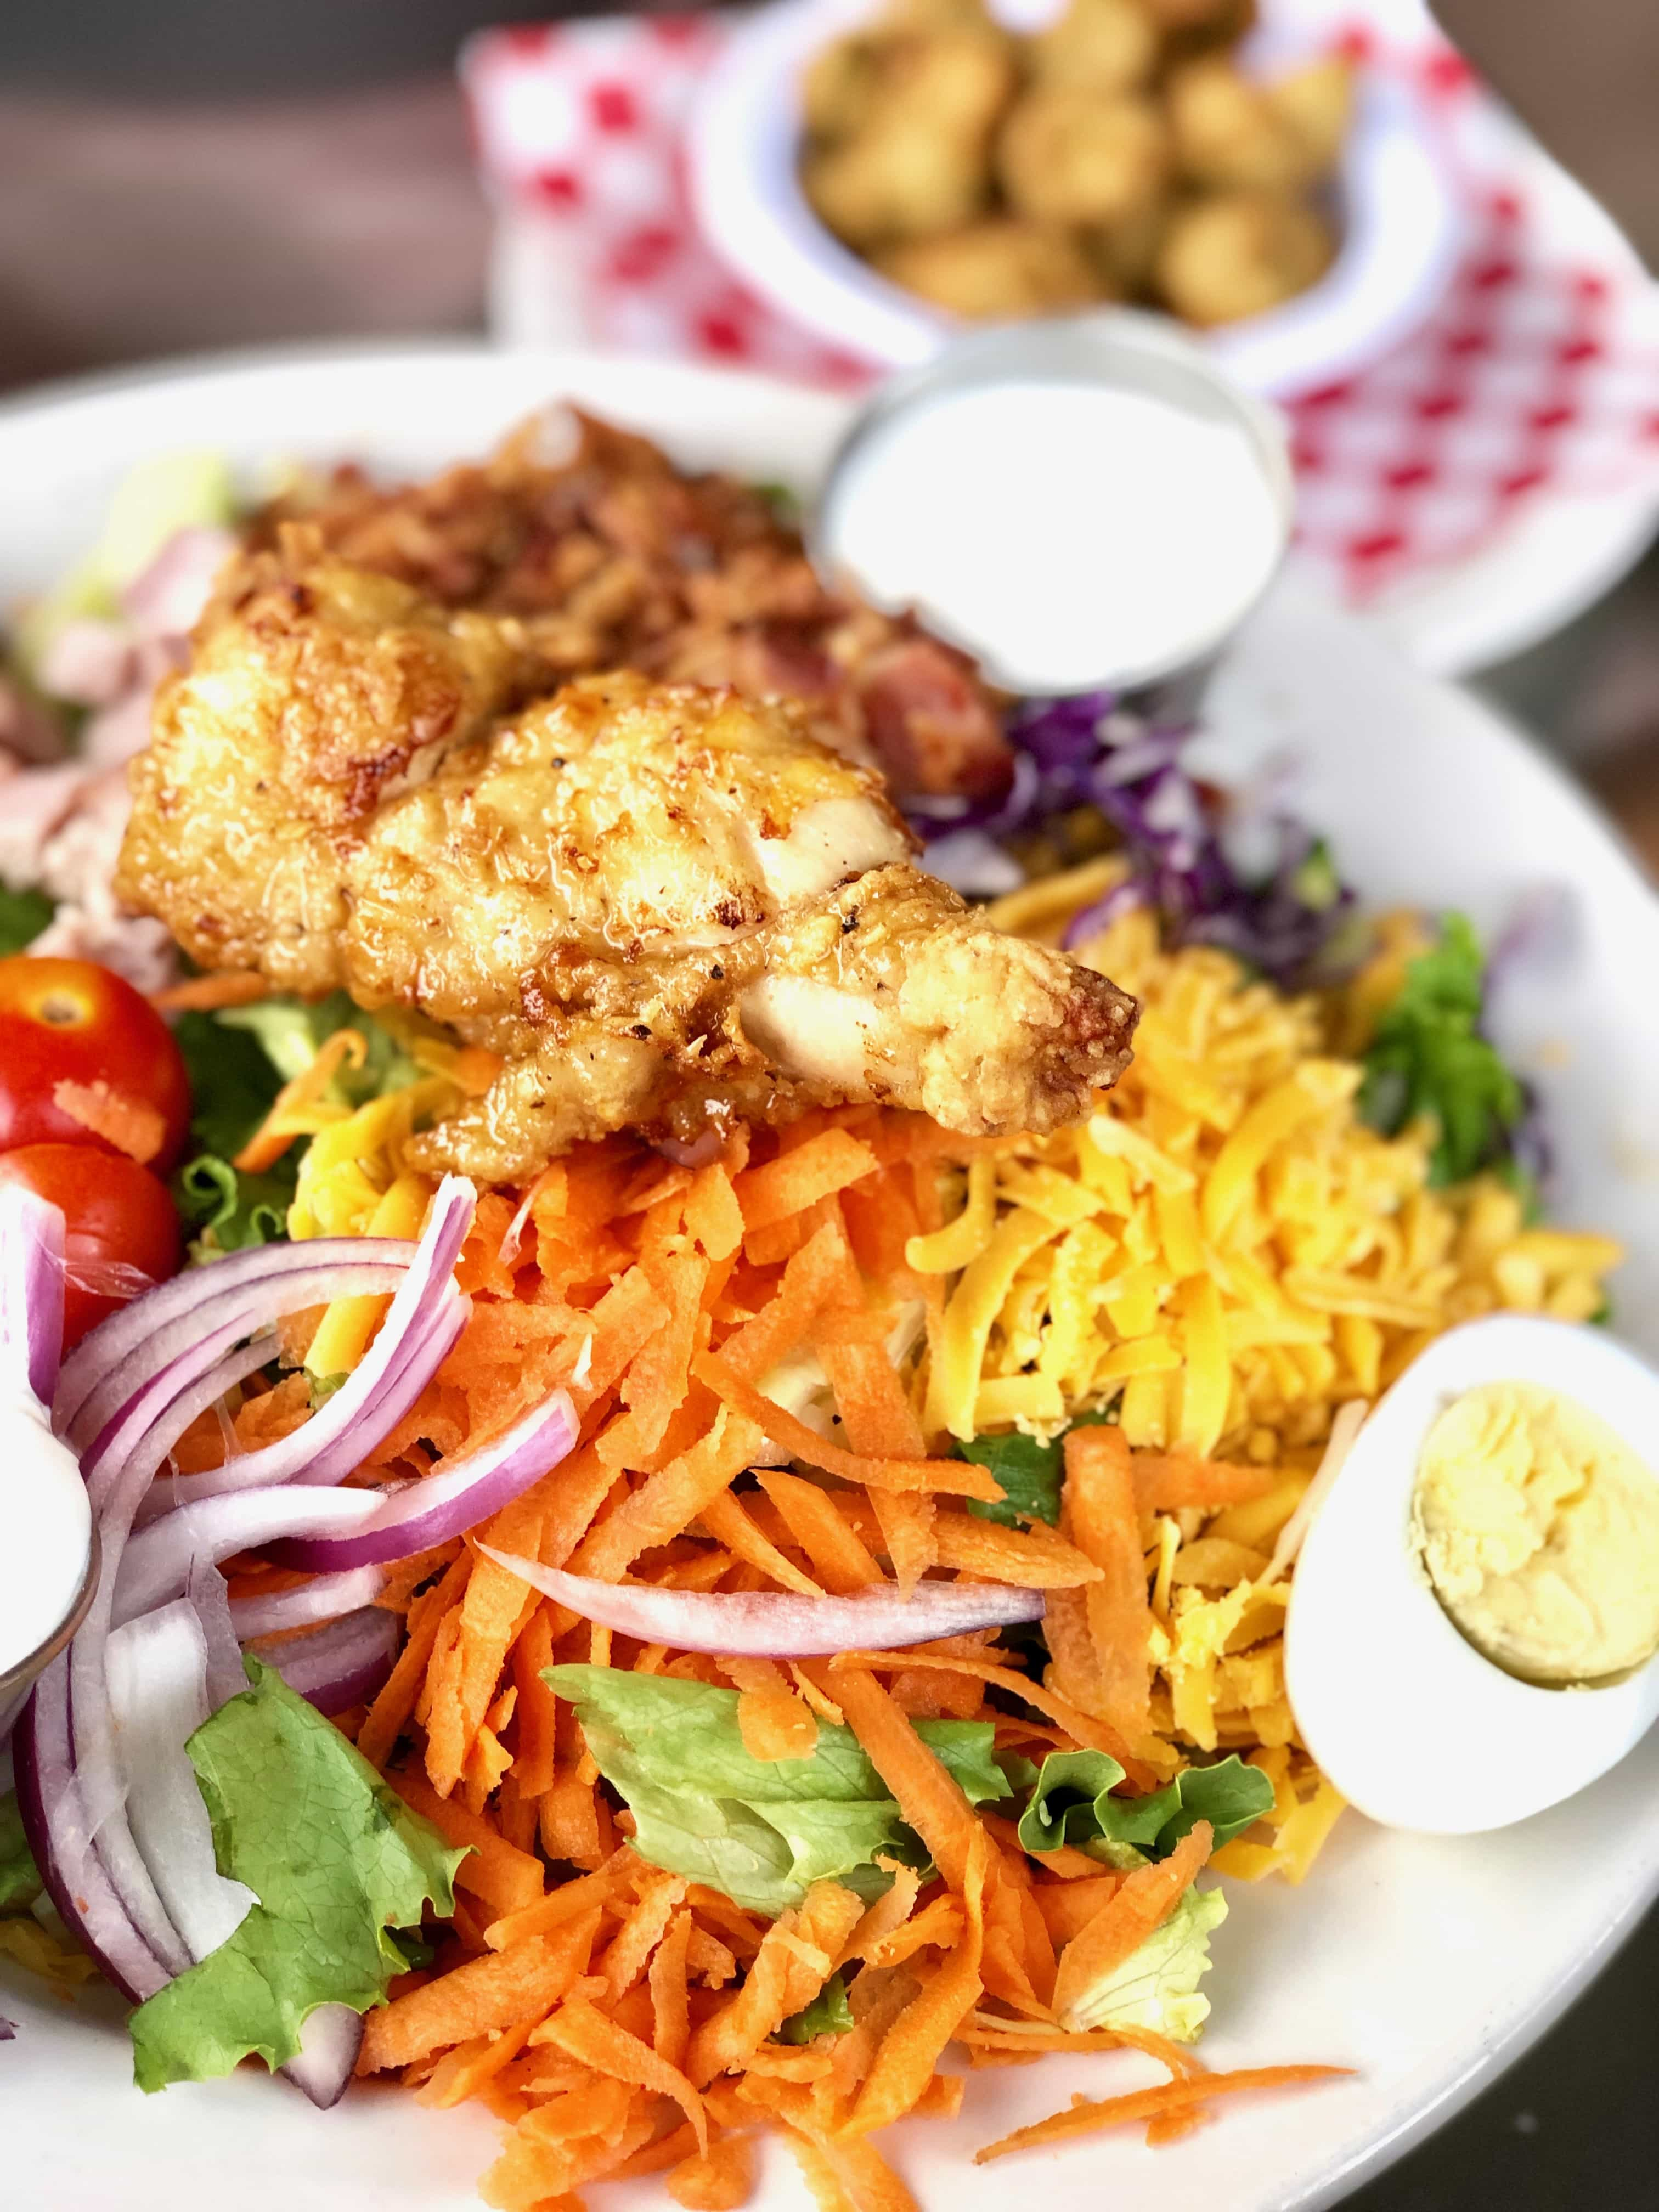 chef salad with boiled eggs, cheese, carrots and tomatoes surrounding a chicken tender